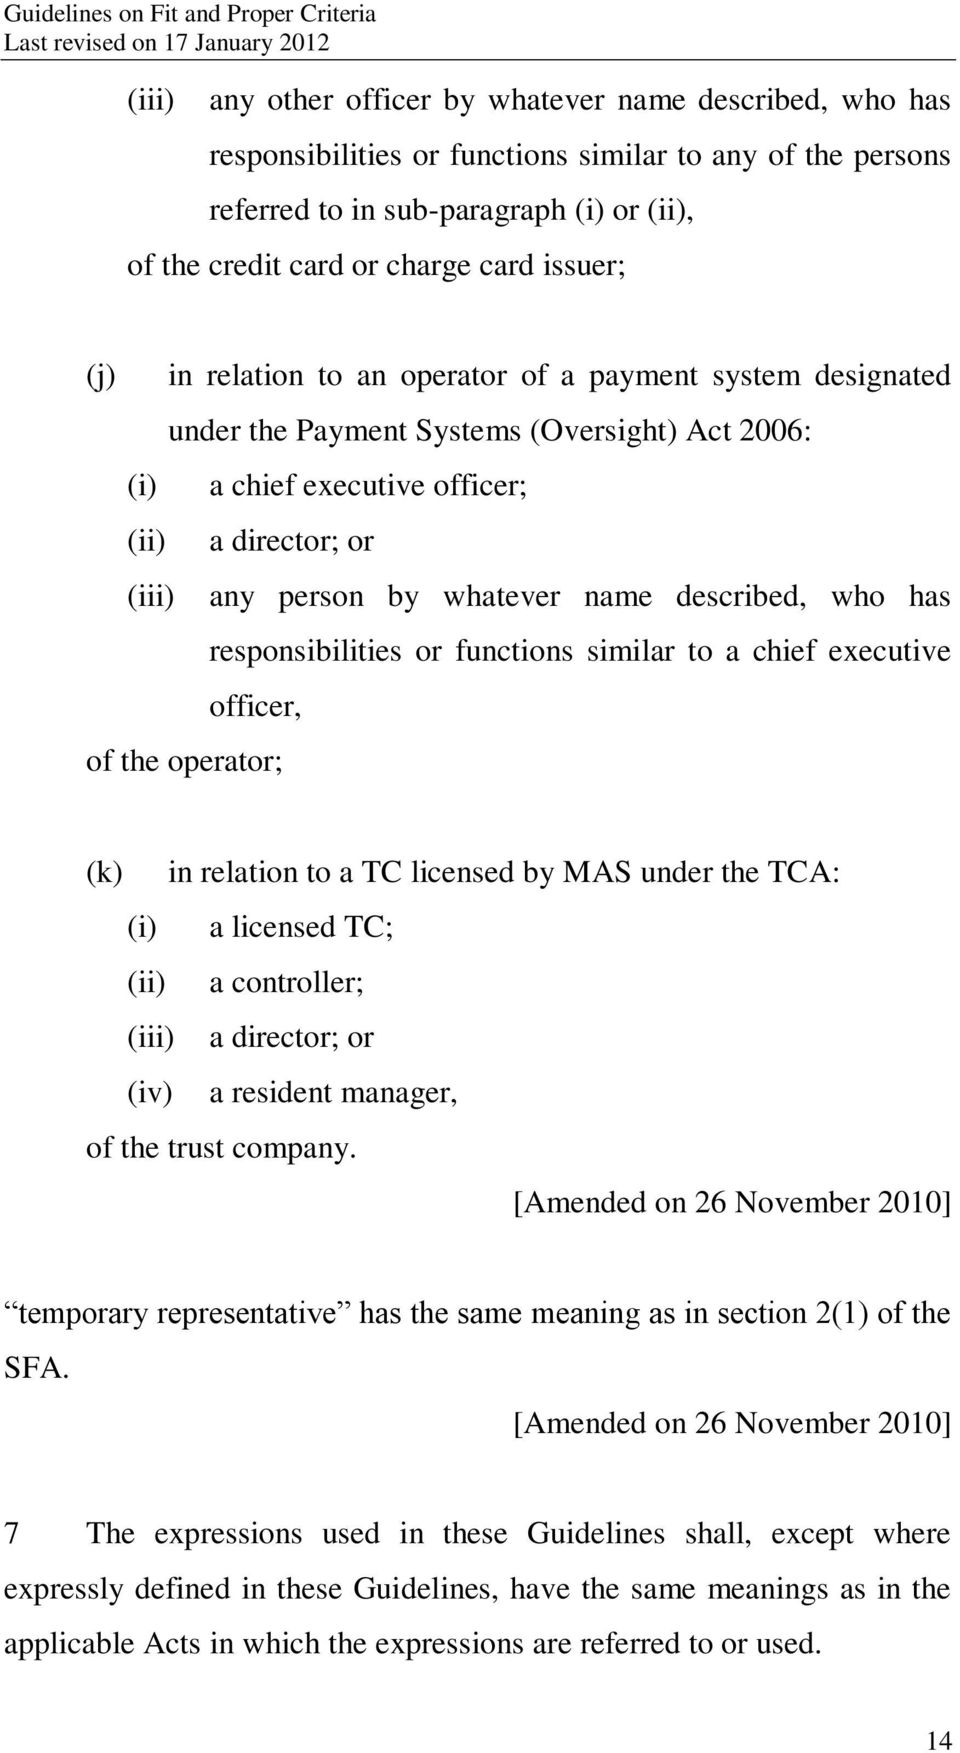 name described, who has responsibilities or functions similar to a chief executive officer, of the operator; (k) in relation to a TC licensed by MAS under the TCA: (i) a licensed TC; (ii) a